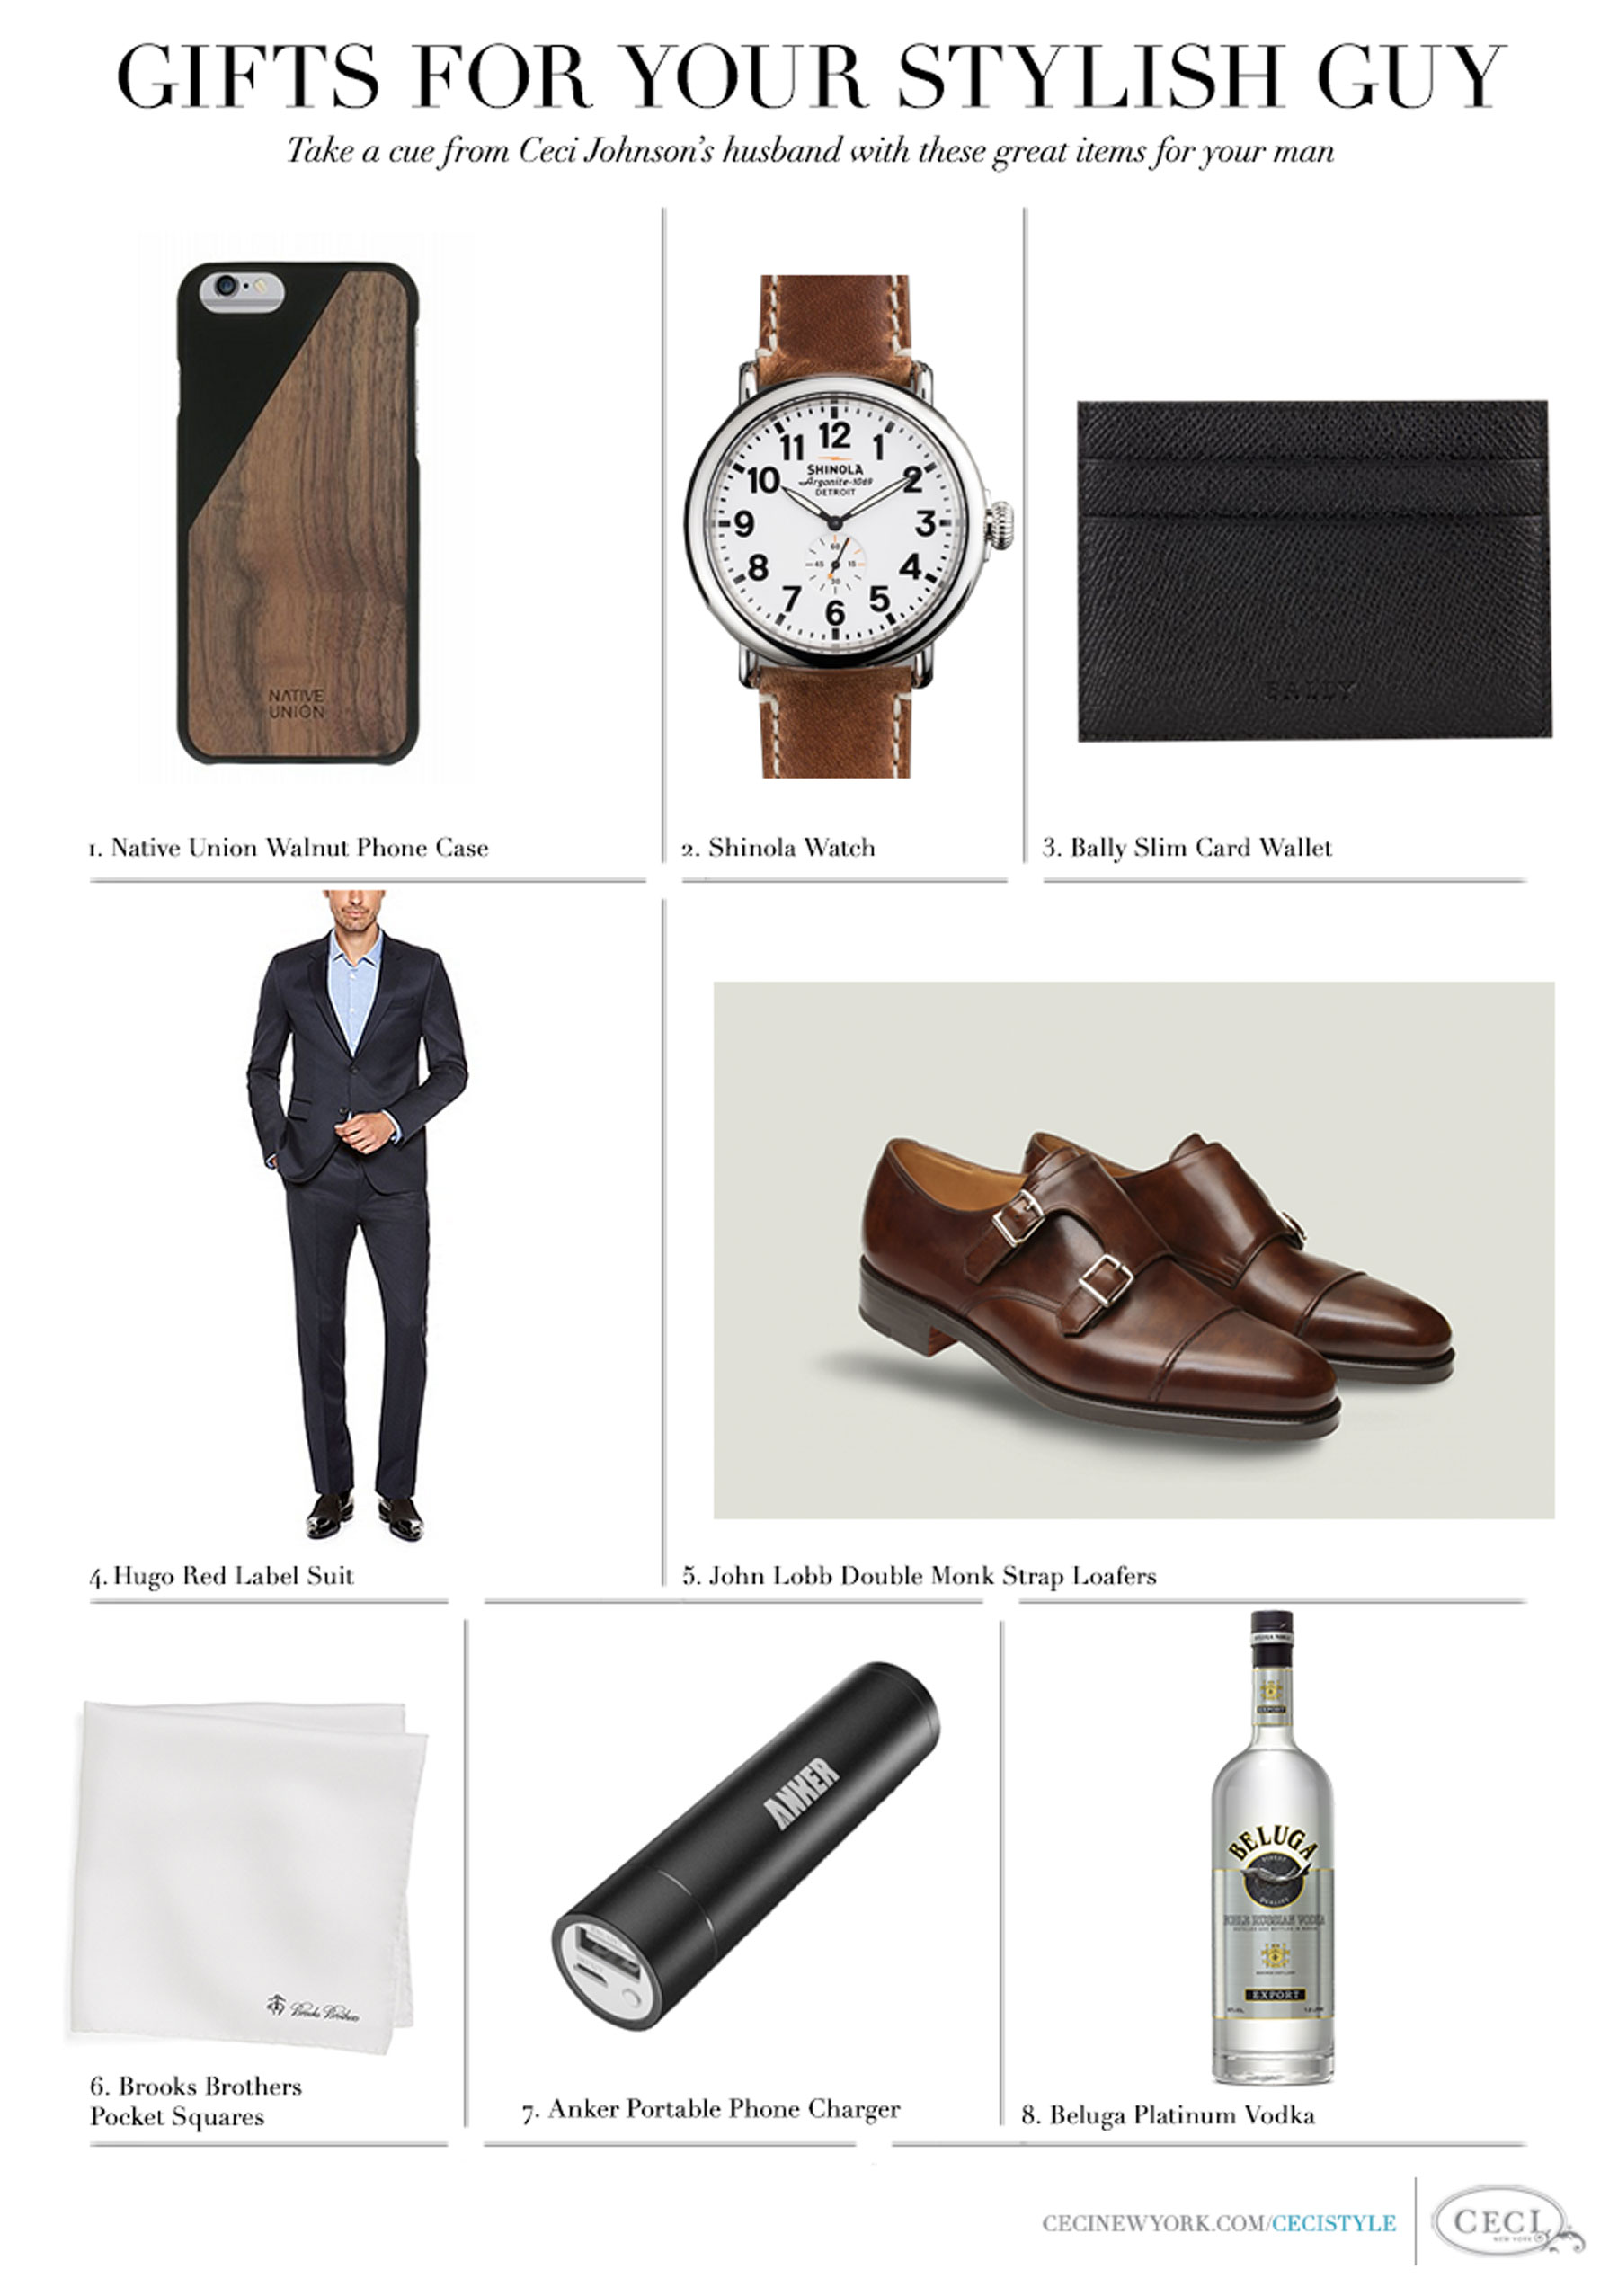 CeciStyle Magazine v255: Fabulous Finds Guest Editor - Stylish Father's Day Gifts Inspired by Ceci Johnson's Husband